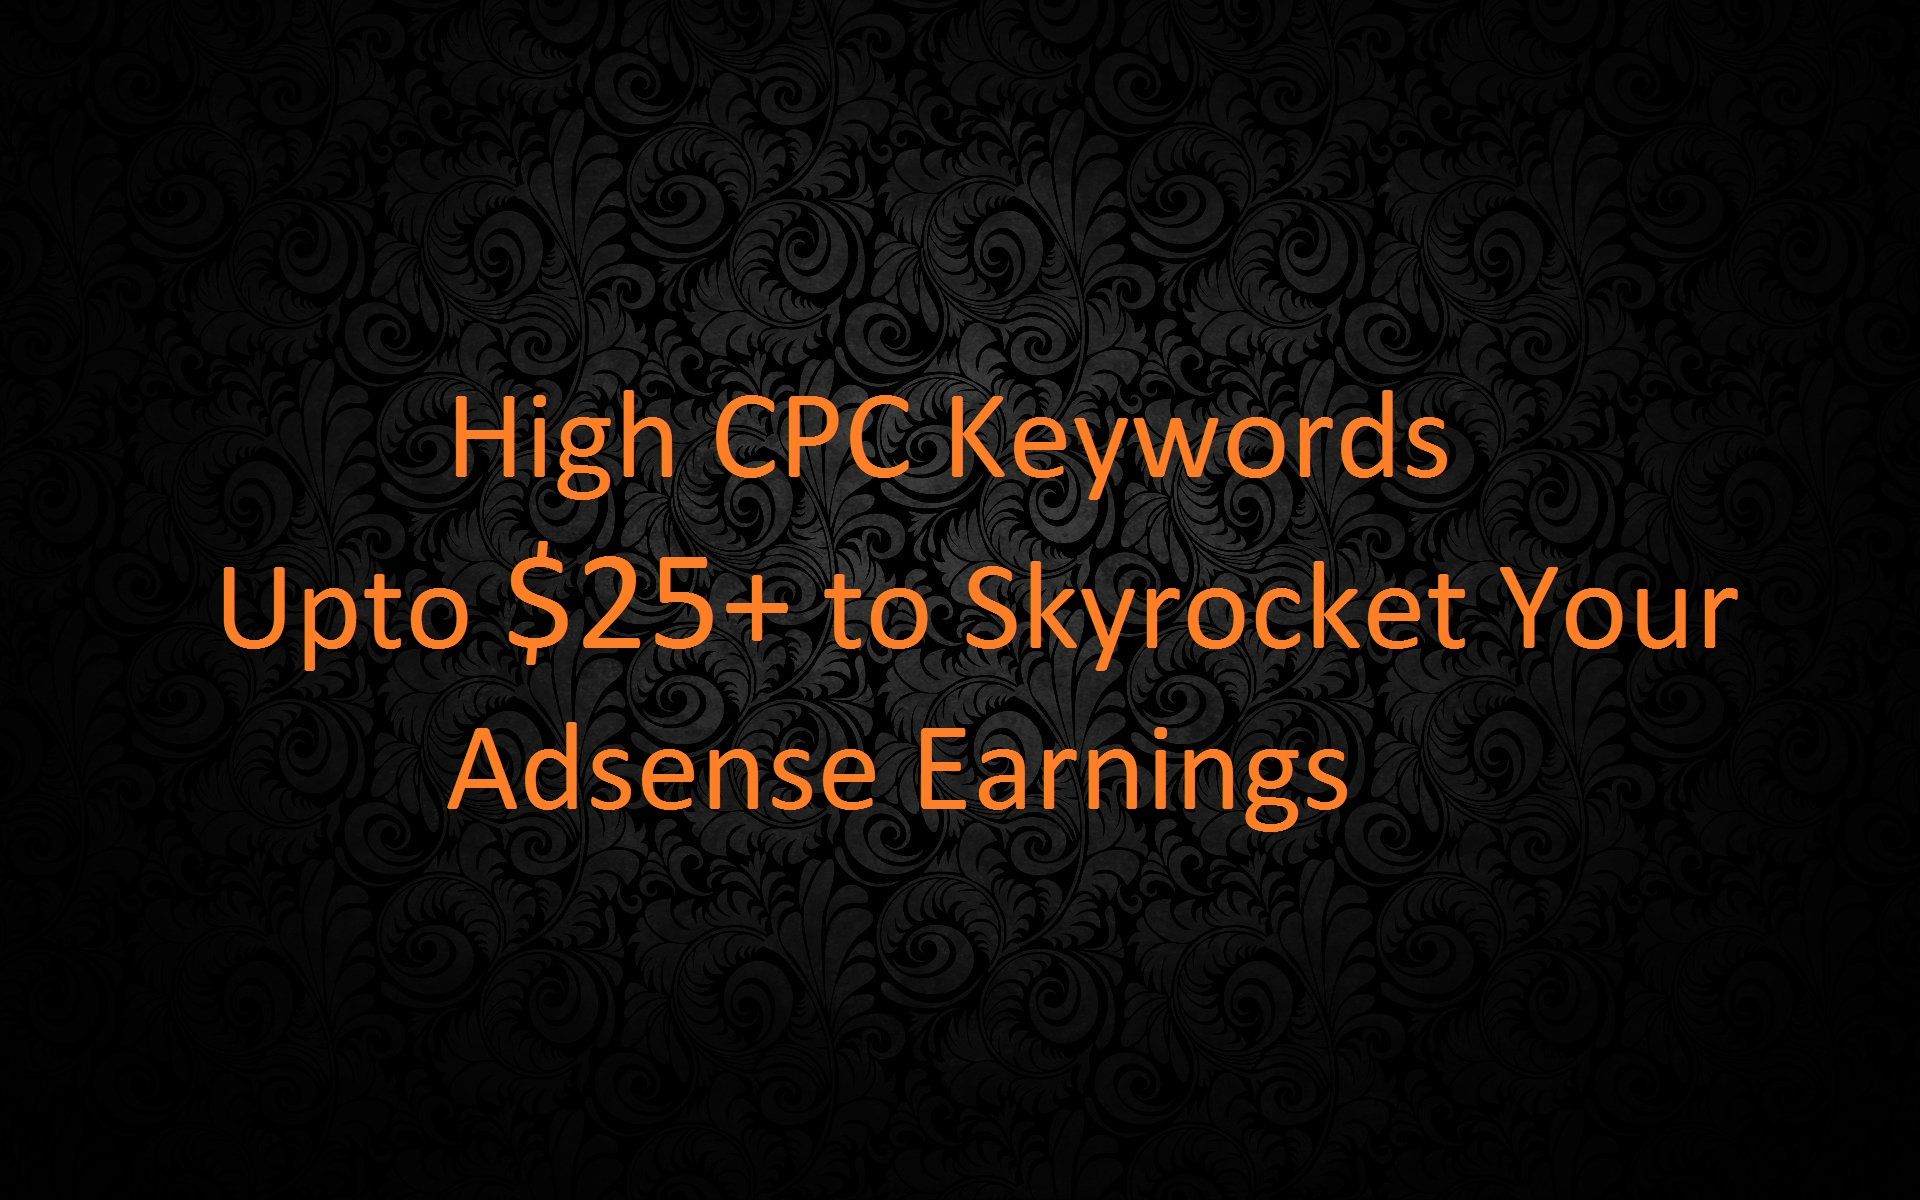 Give High CPC Keywords For Adsense Website Upto 25 Do...